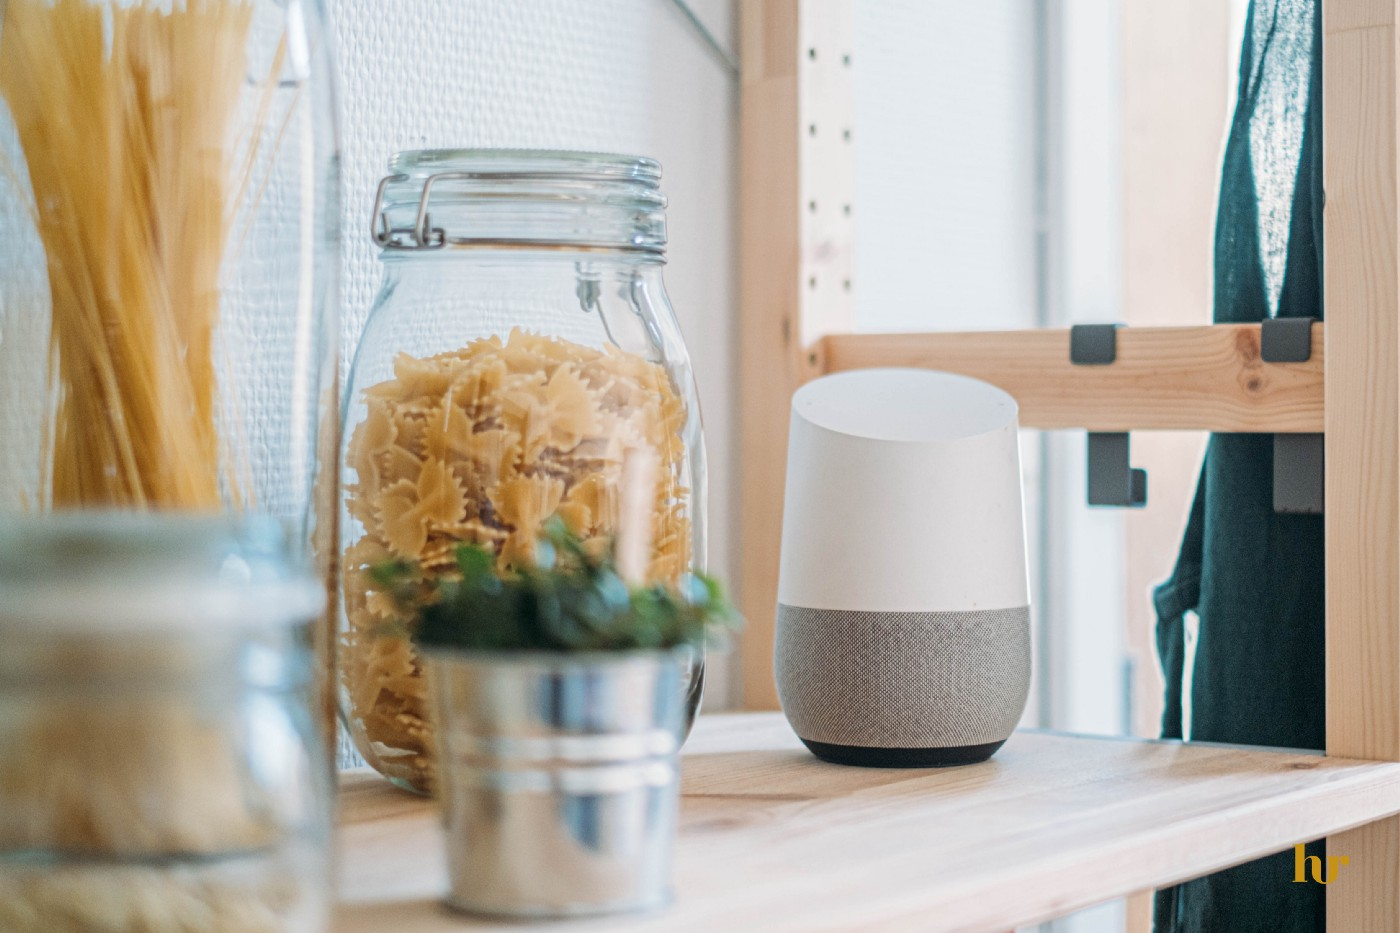 Are voice assistants always listening?